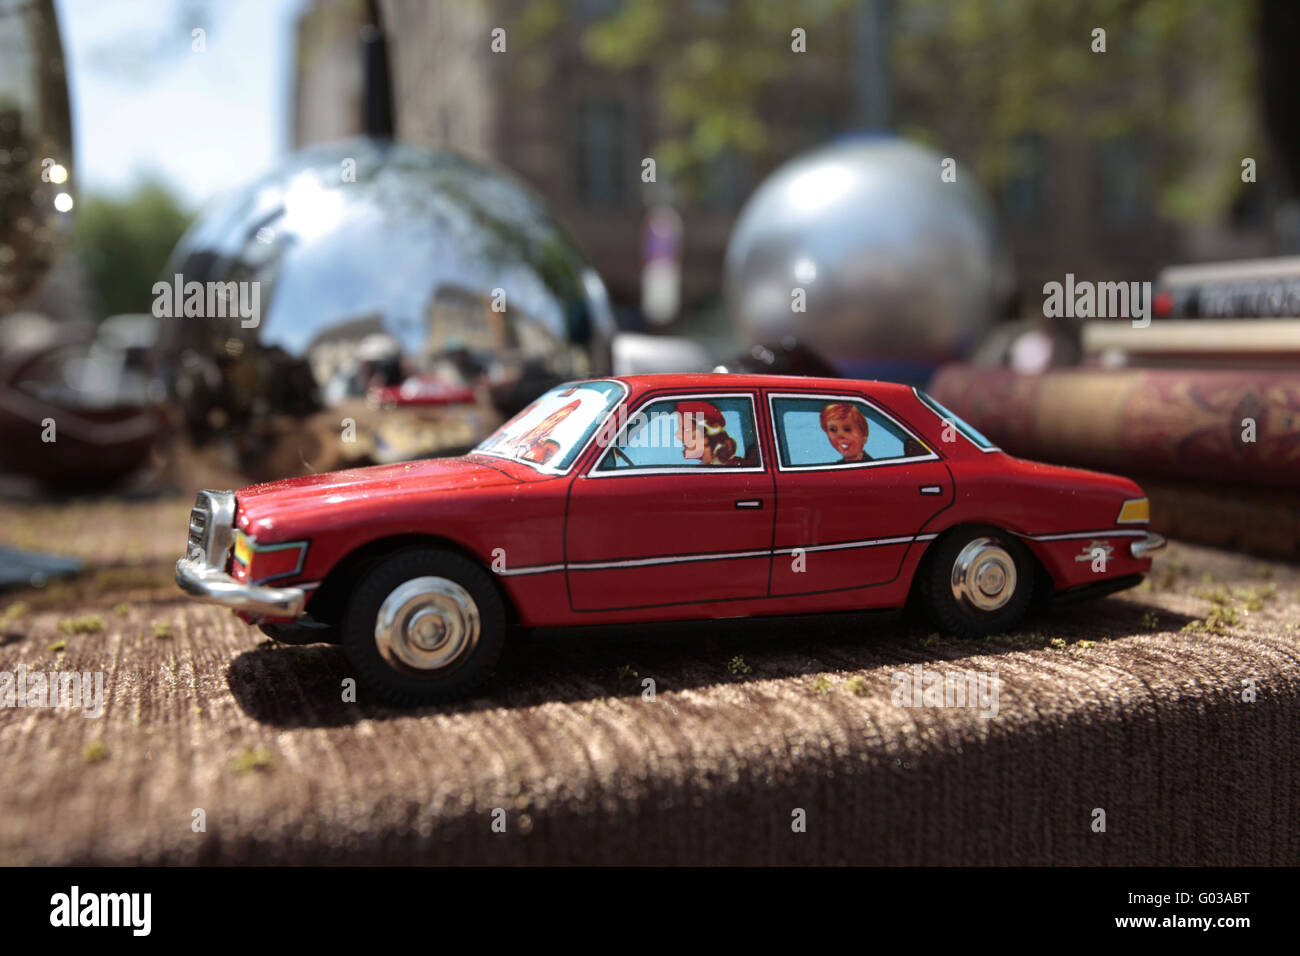 france car boot sale car play toys stock photo 103336236 alamy. Black Bedroom Furniture Sets. Home Design Ideas